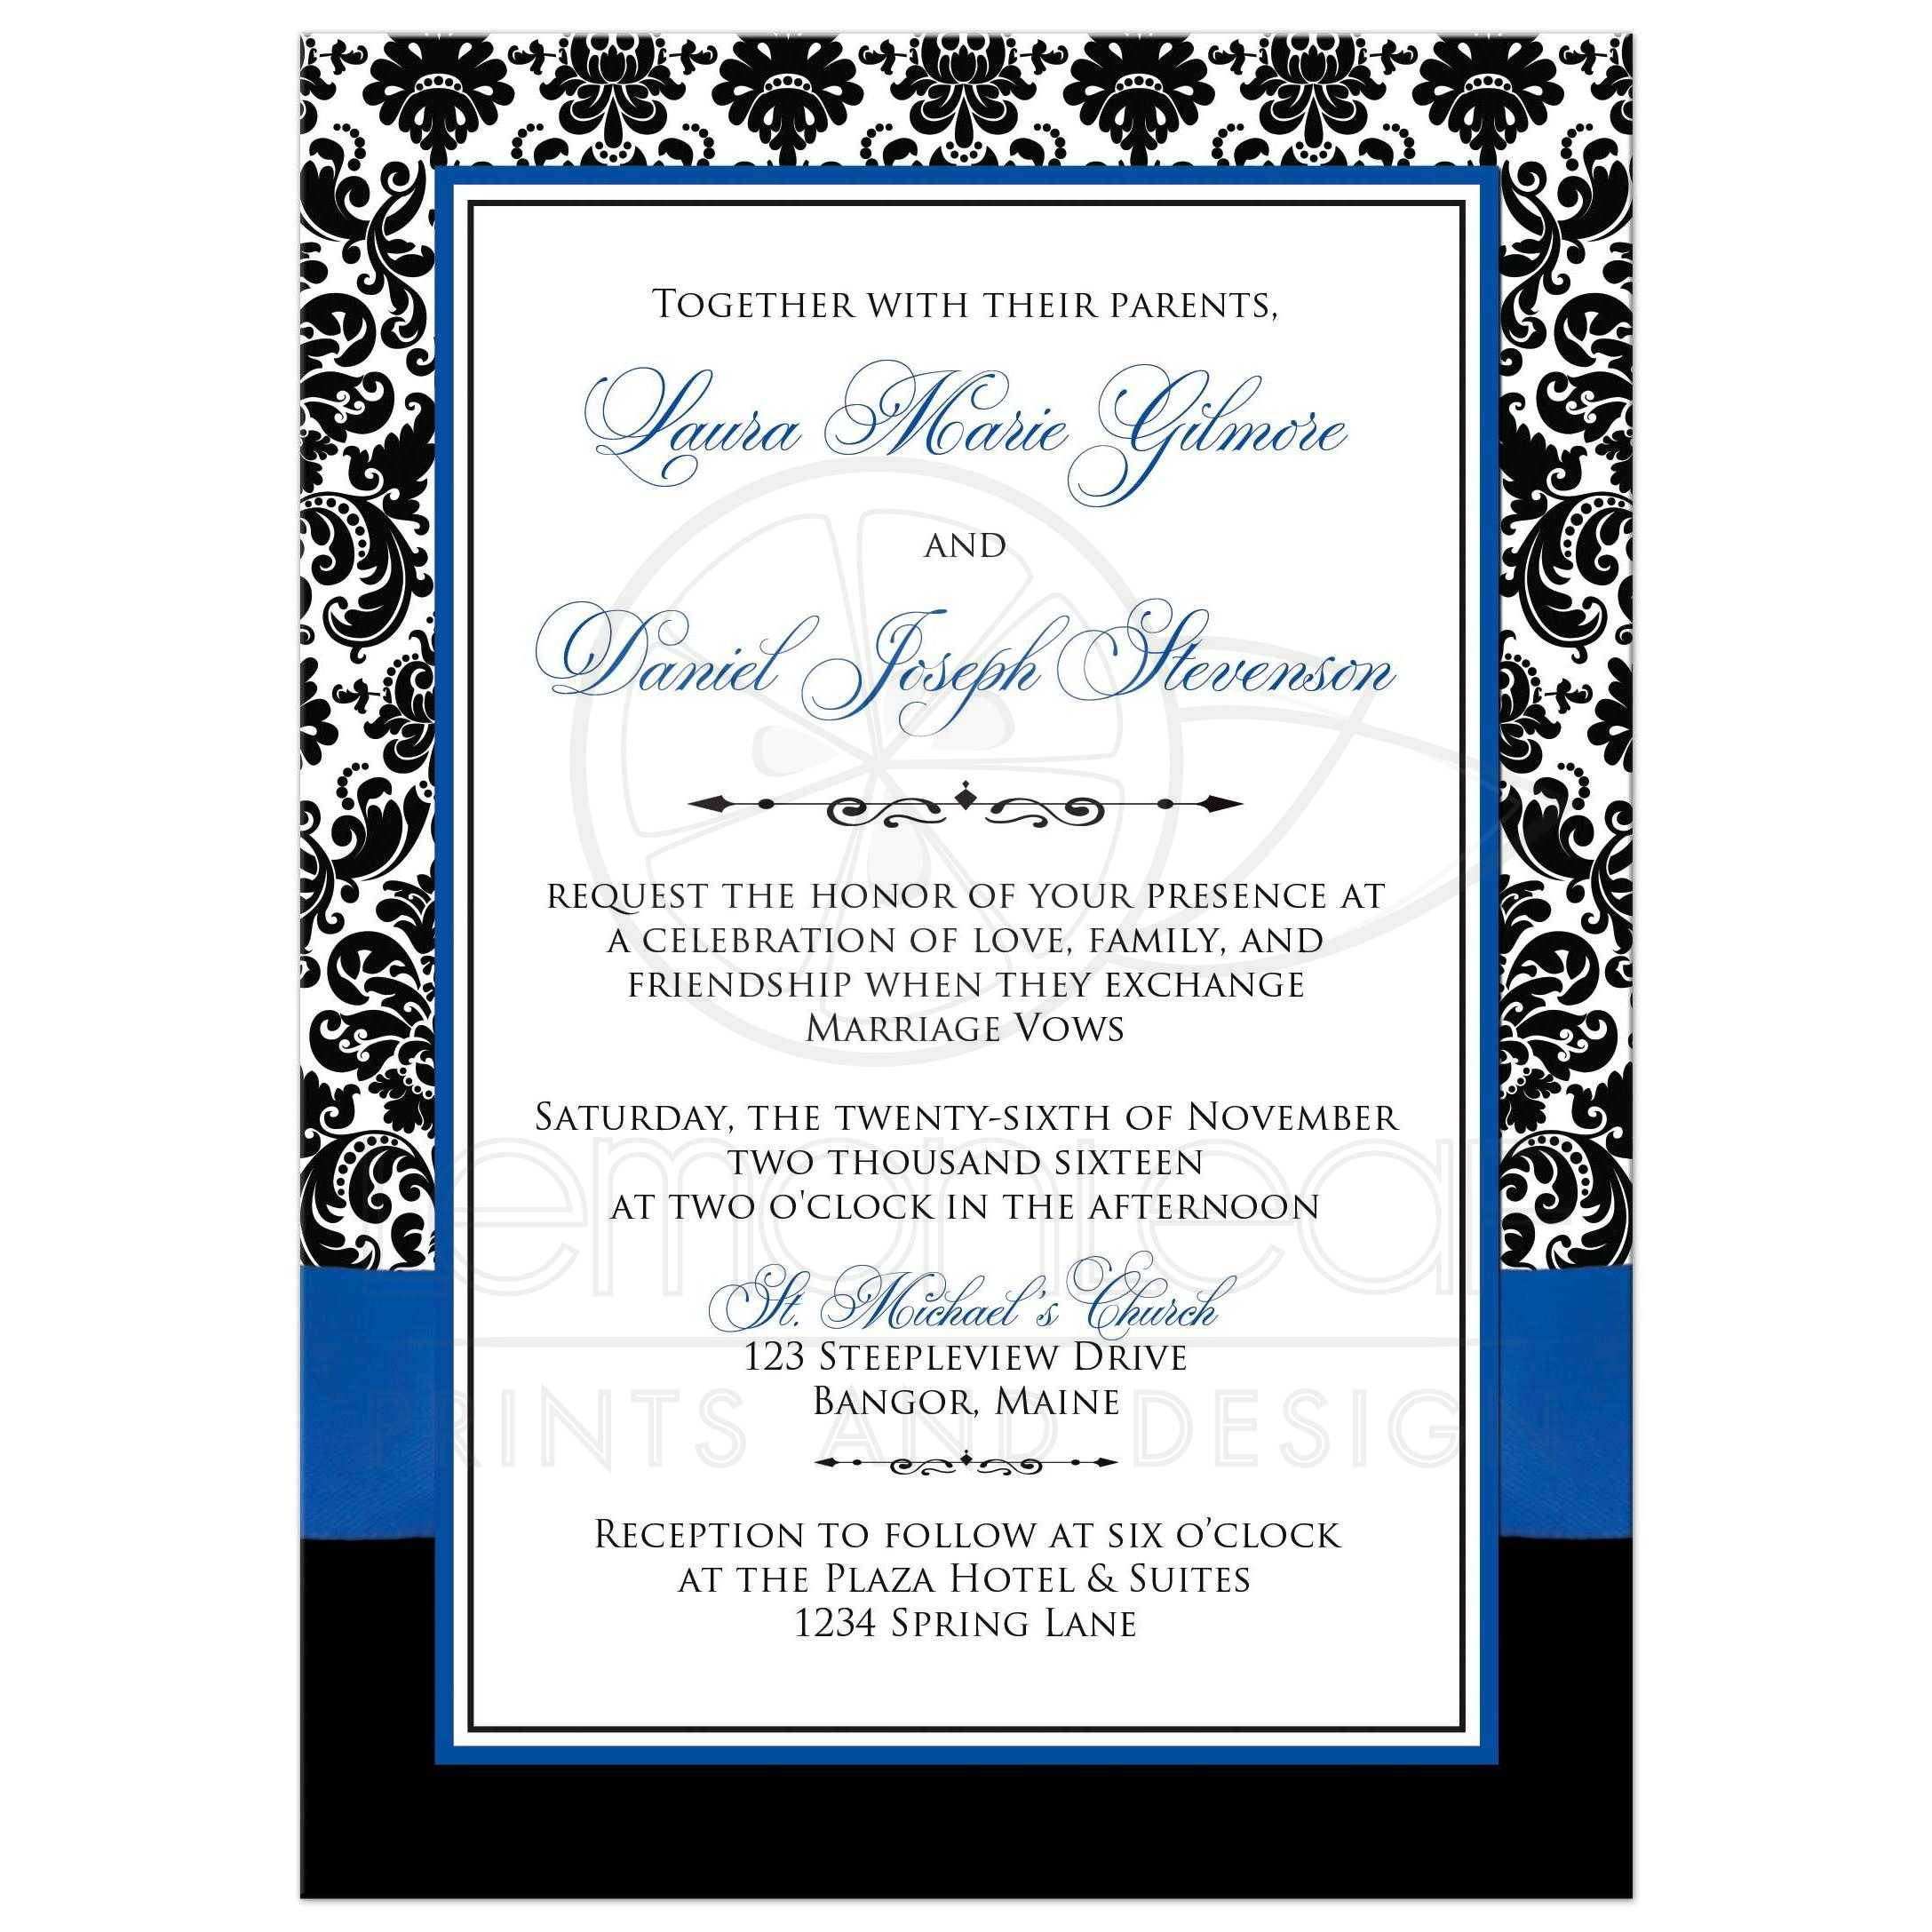 Royal Blue Wedding Invitation Template